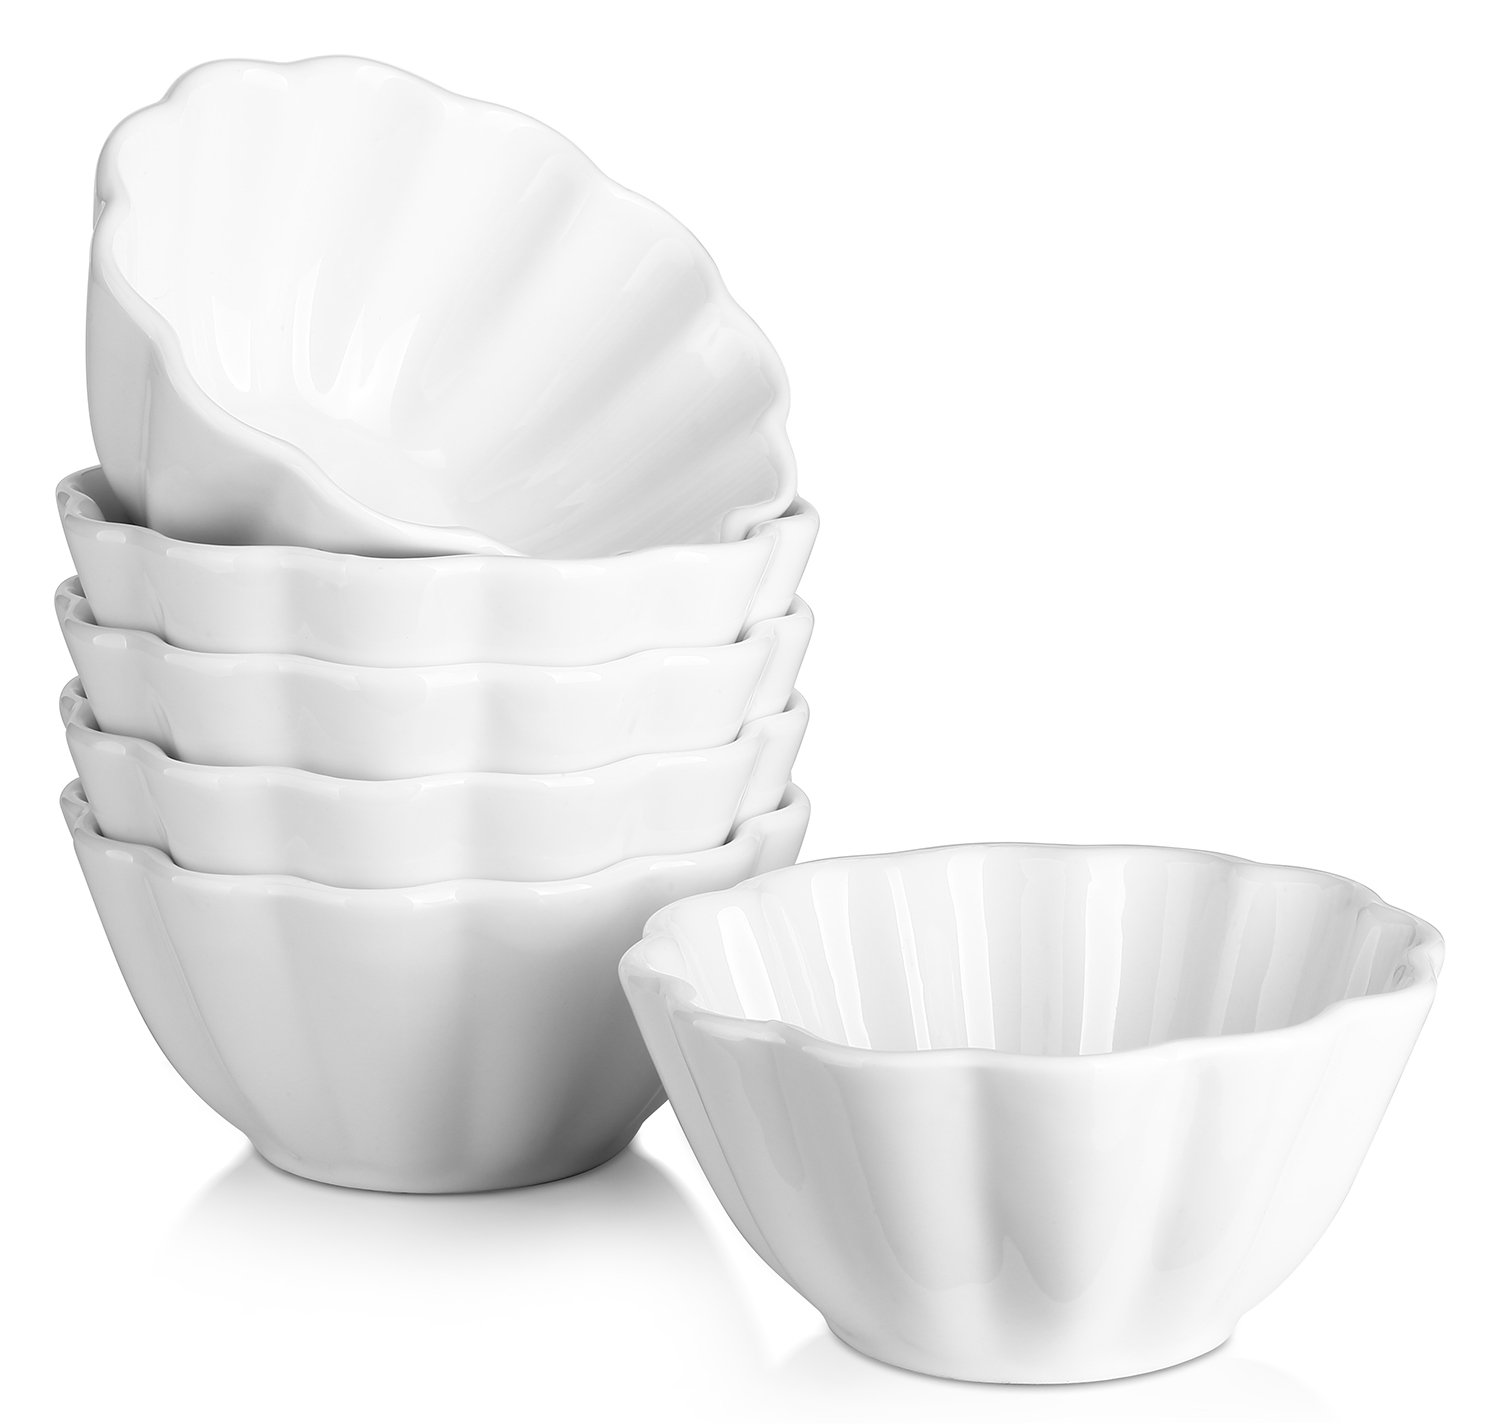 Dowan 4 Oz Porcelain Ramekins for Baking Serving Bowls for Souffle, Creme Brulee and Dipping Sauces, Set of 6, White by DOWAN